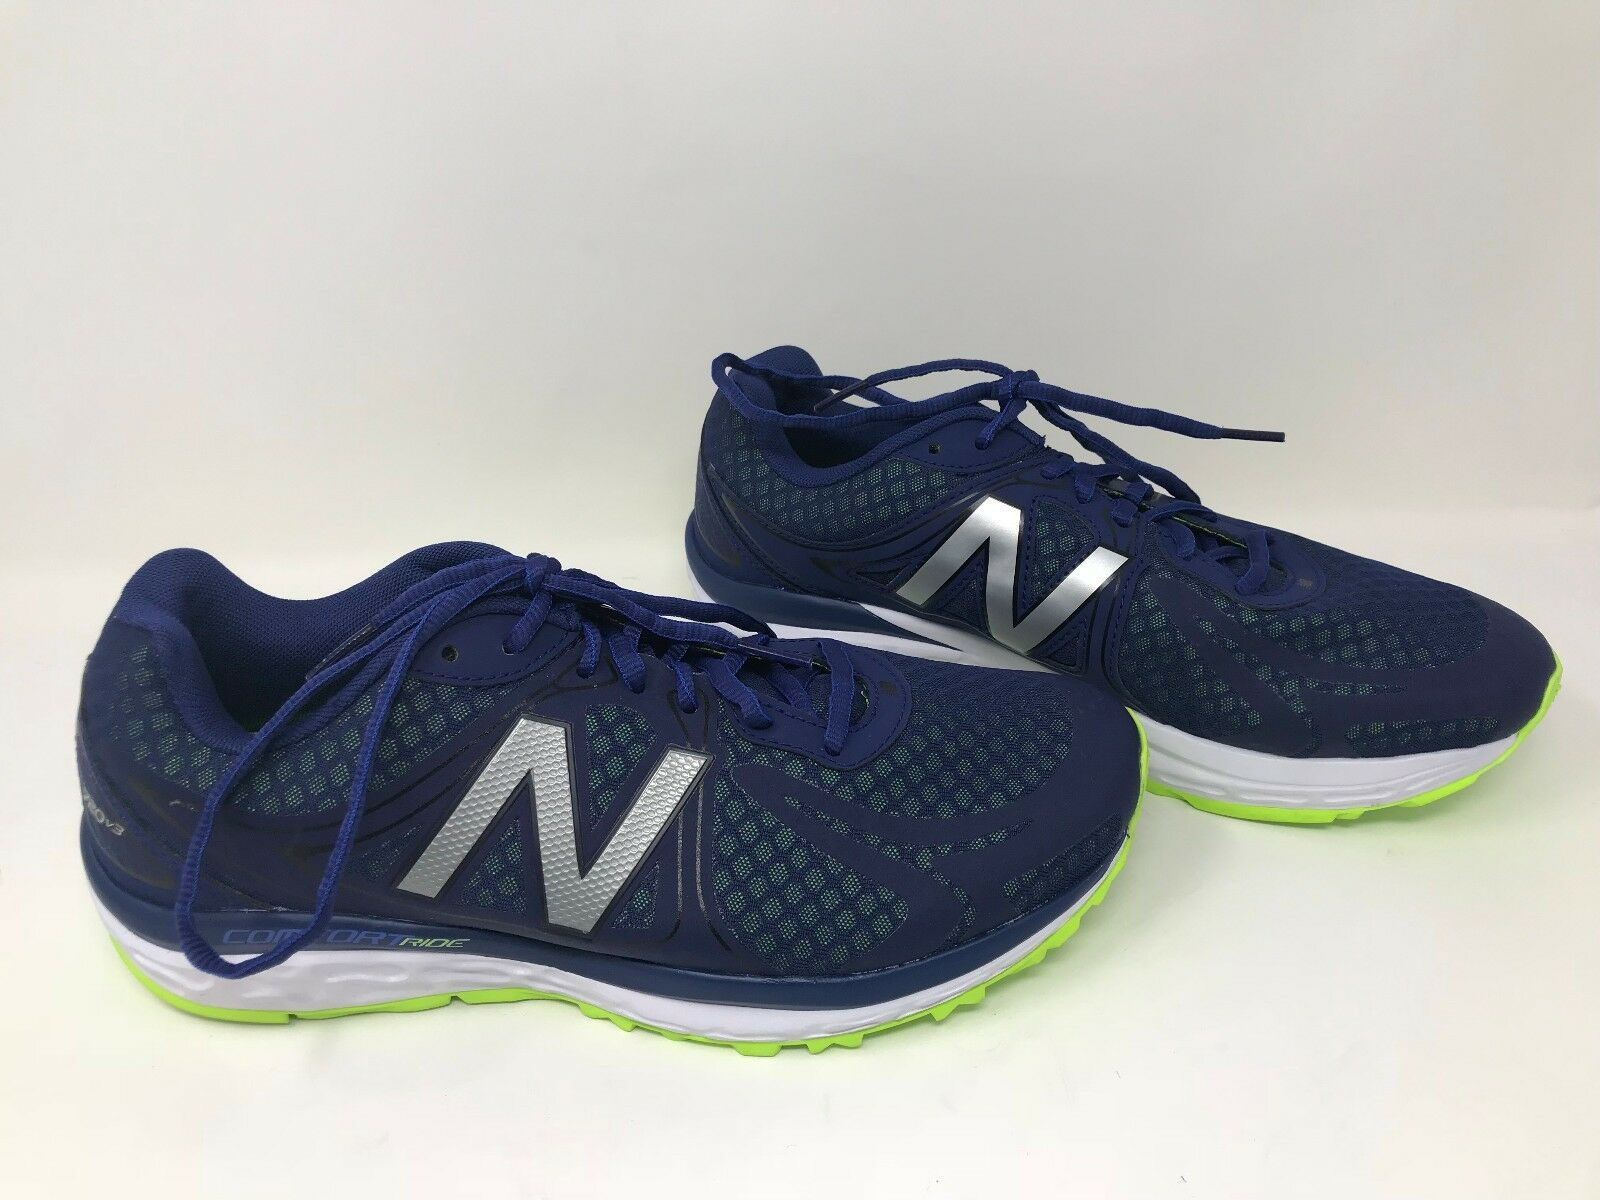 New  Men's New Balance Comfort Ride bluee Yellow SZ 8.5 M720RN3 J9